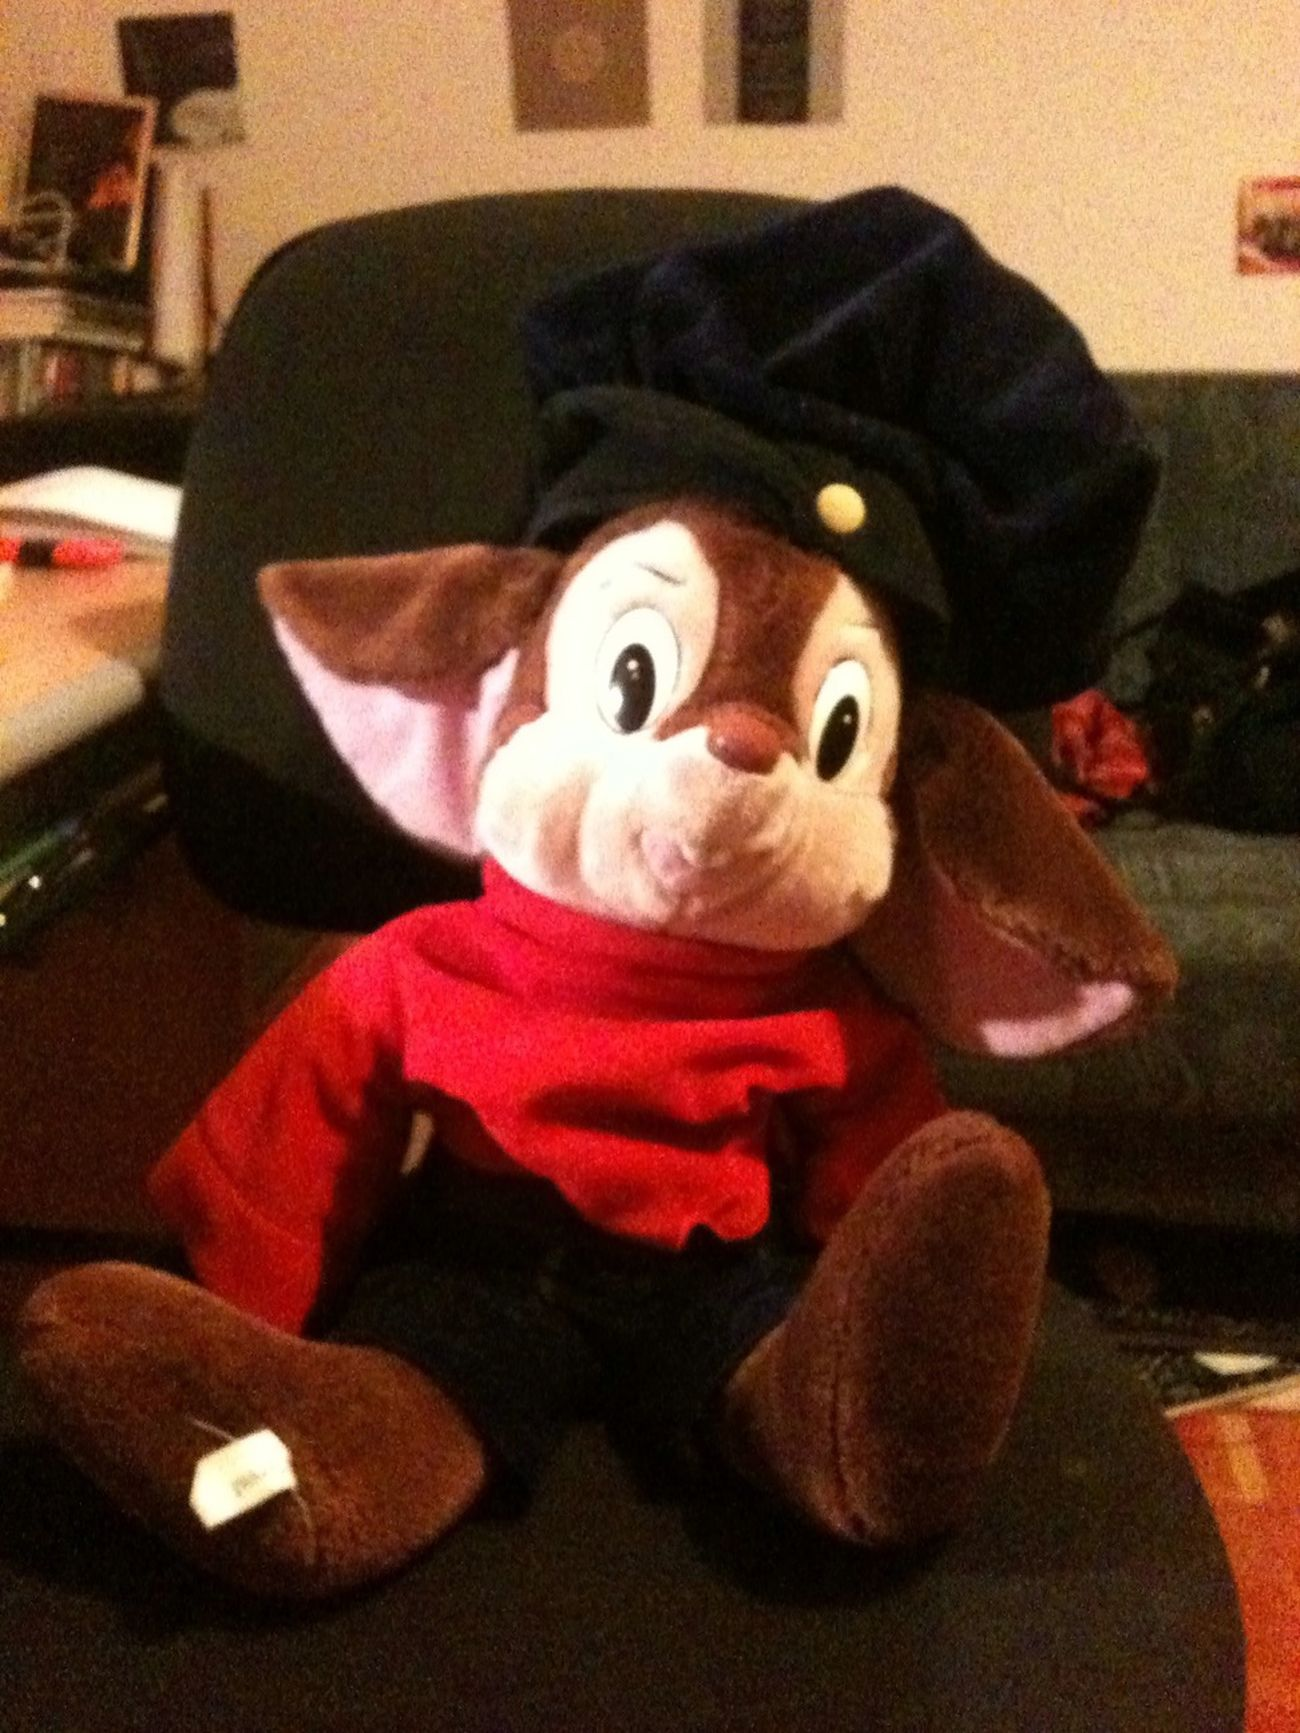 Fievel says you should go check out my blog tomorrow, 'cos a new comic will be happening. Http://Clairikine.blogspot.com